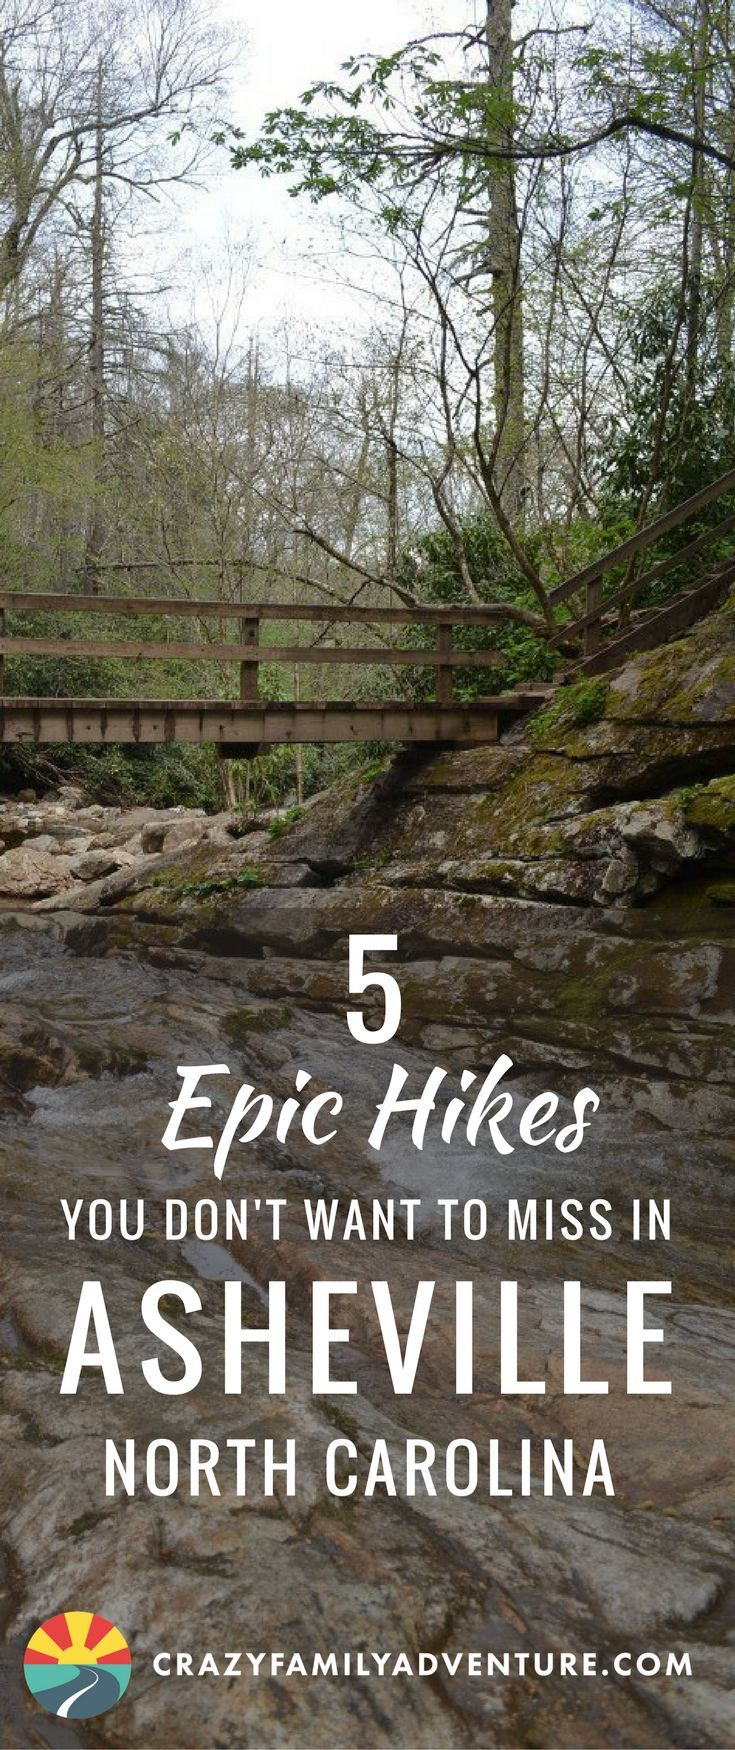 5 Epic Hikes You Don't Want to Miss in Asheville, North Carolina- One of our favorite #thingstodoin #Asheville, #NorthCarolina is #hiking. North Carolina is home to #beautiful #parks and a #nationalforest, making hiking that much more appealing! Discover